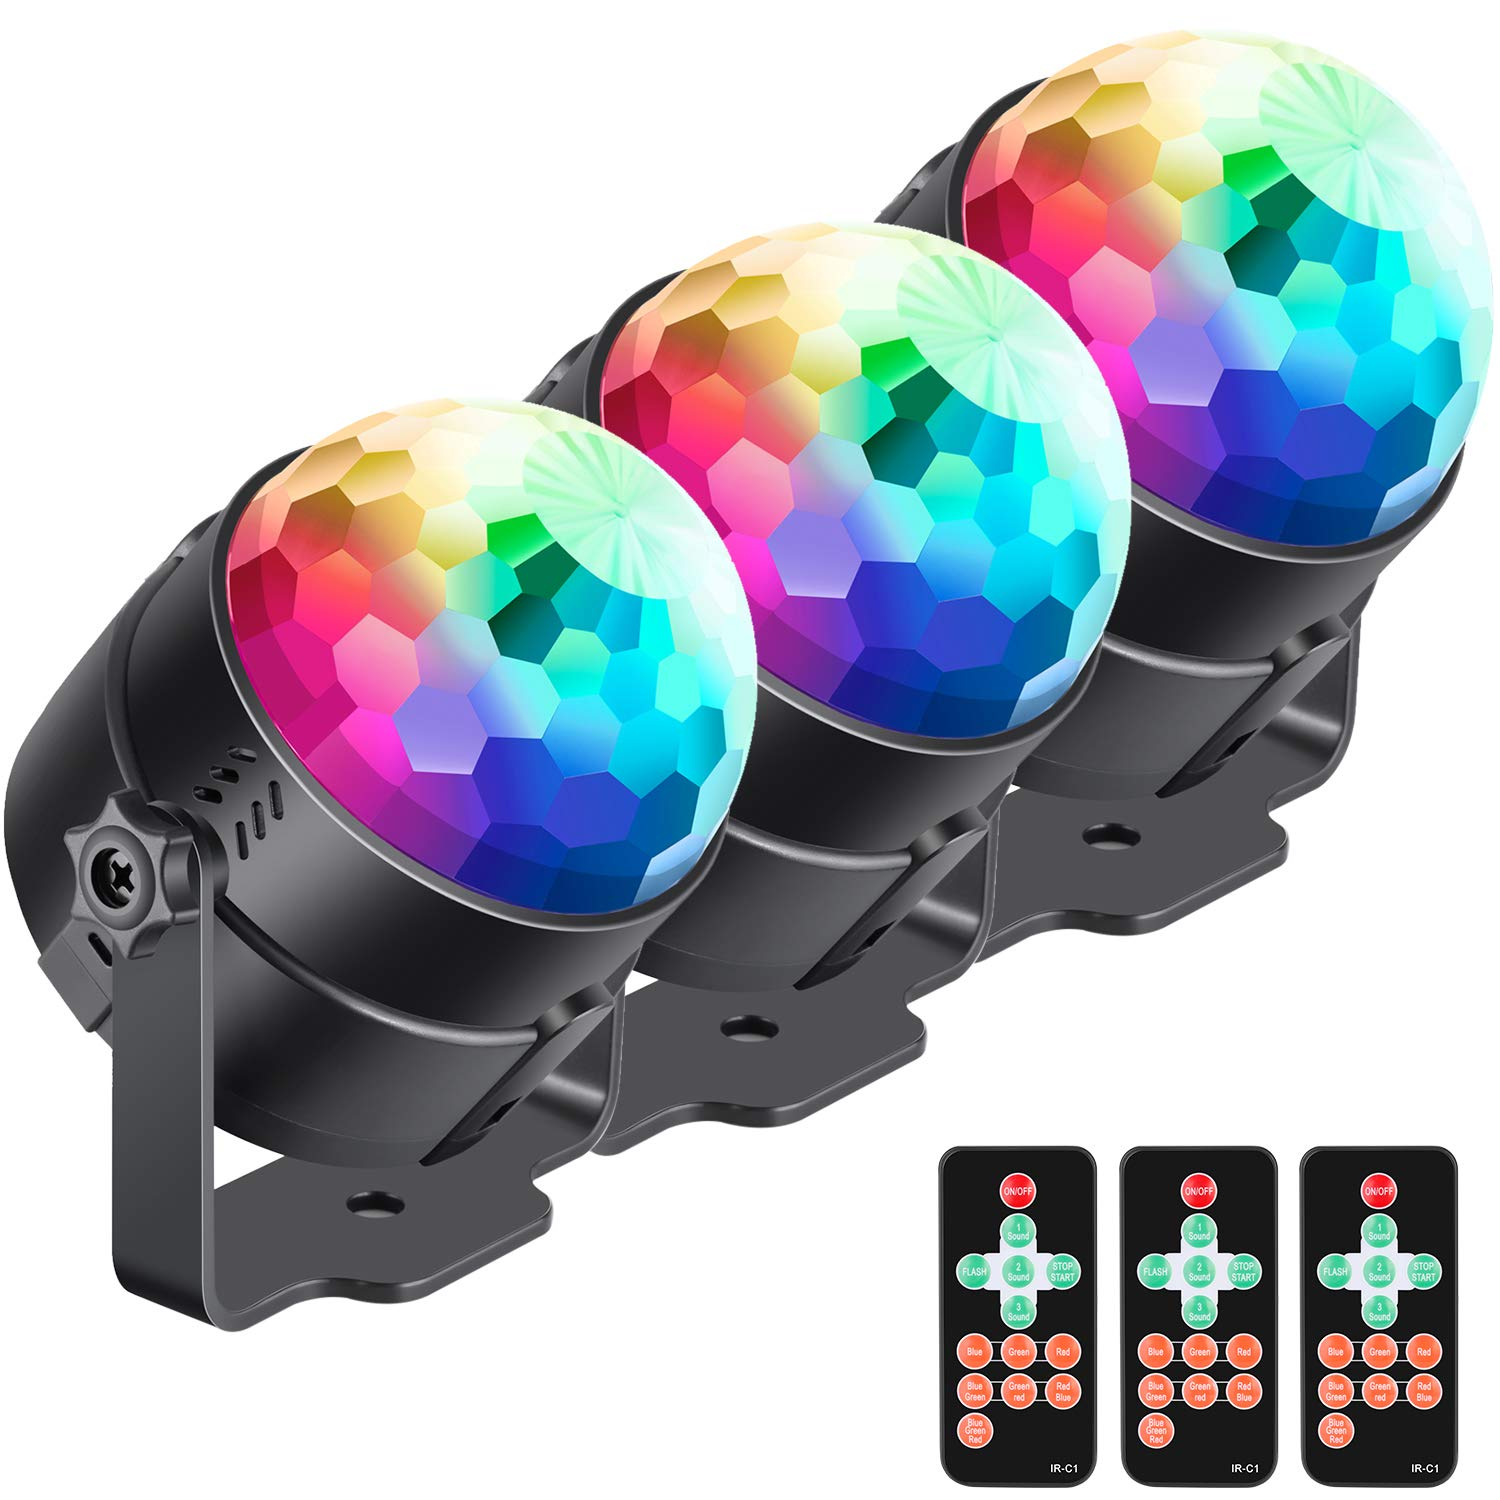 Neewer 3-Pack Stage Light Sound Activated Party Lights with Remote Control, Dj Lighting, RBG Disco Ball, 7 Modes Strobe Lamp for Home Room Dance Parties Birthday DJ Bar Karaoke Xmas Wedding Show Club by Neewer